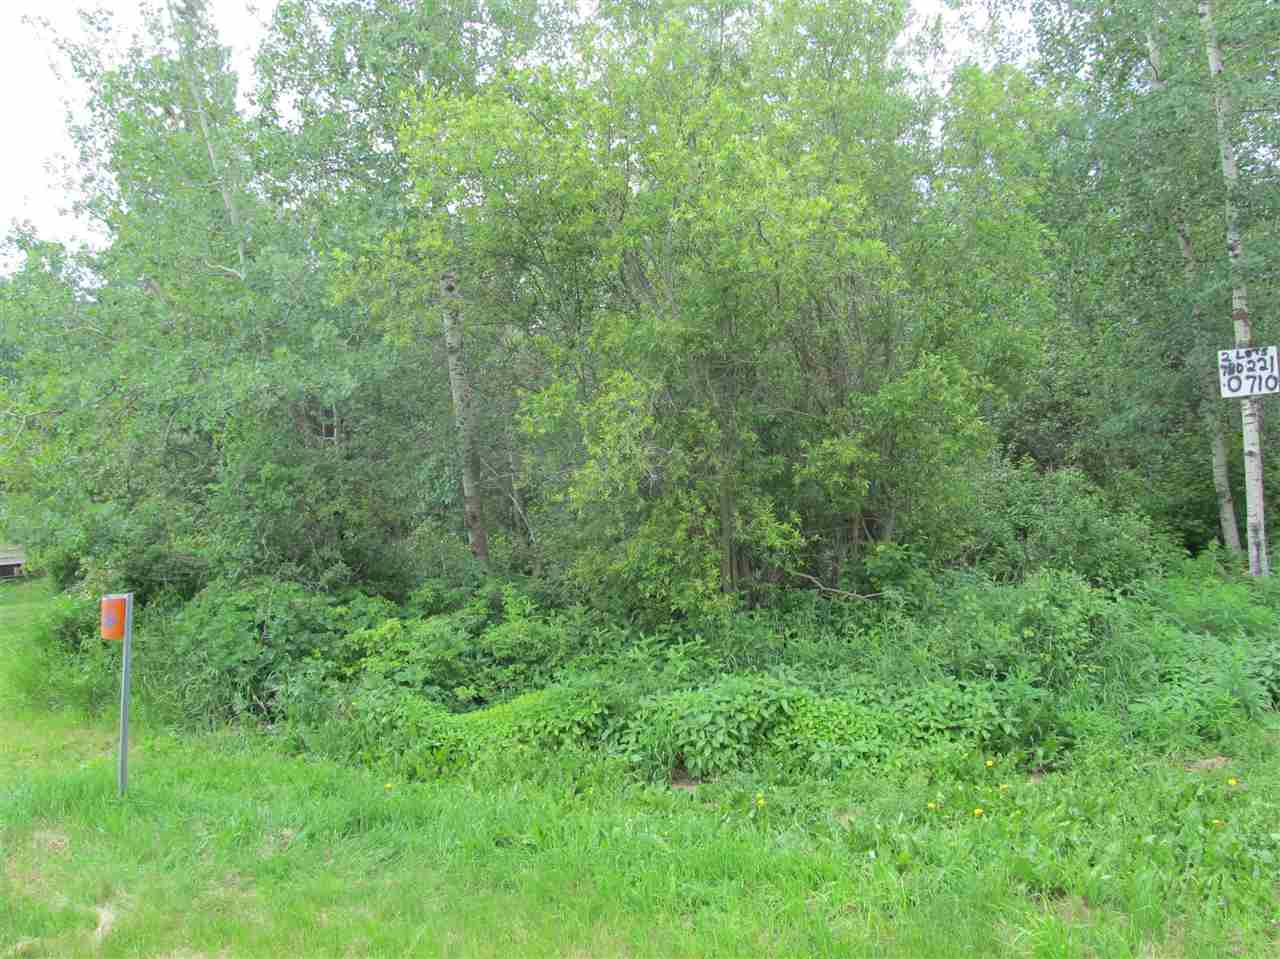 Photo 6: 451 Lakeview Drive: Rural Lac Ste. Anne County Rural Land/Vacant Lot for sale : MLS(r) # E4046294